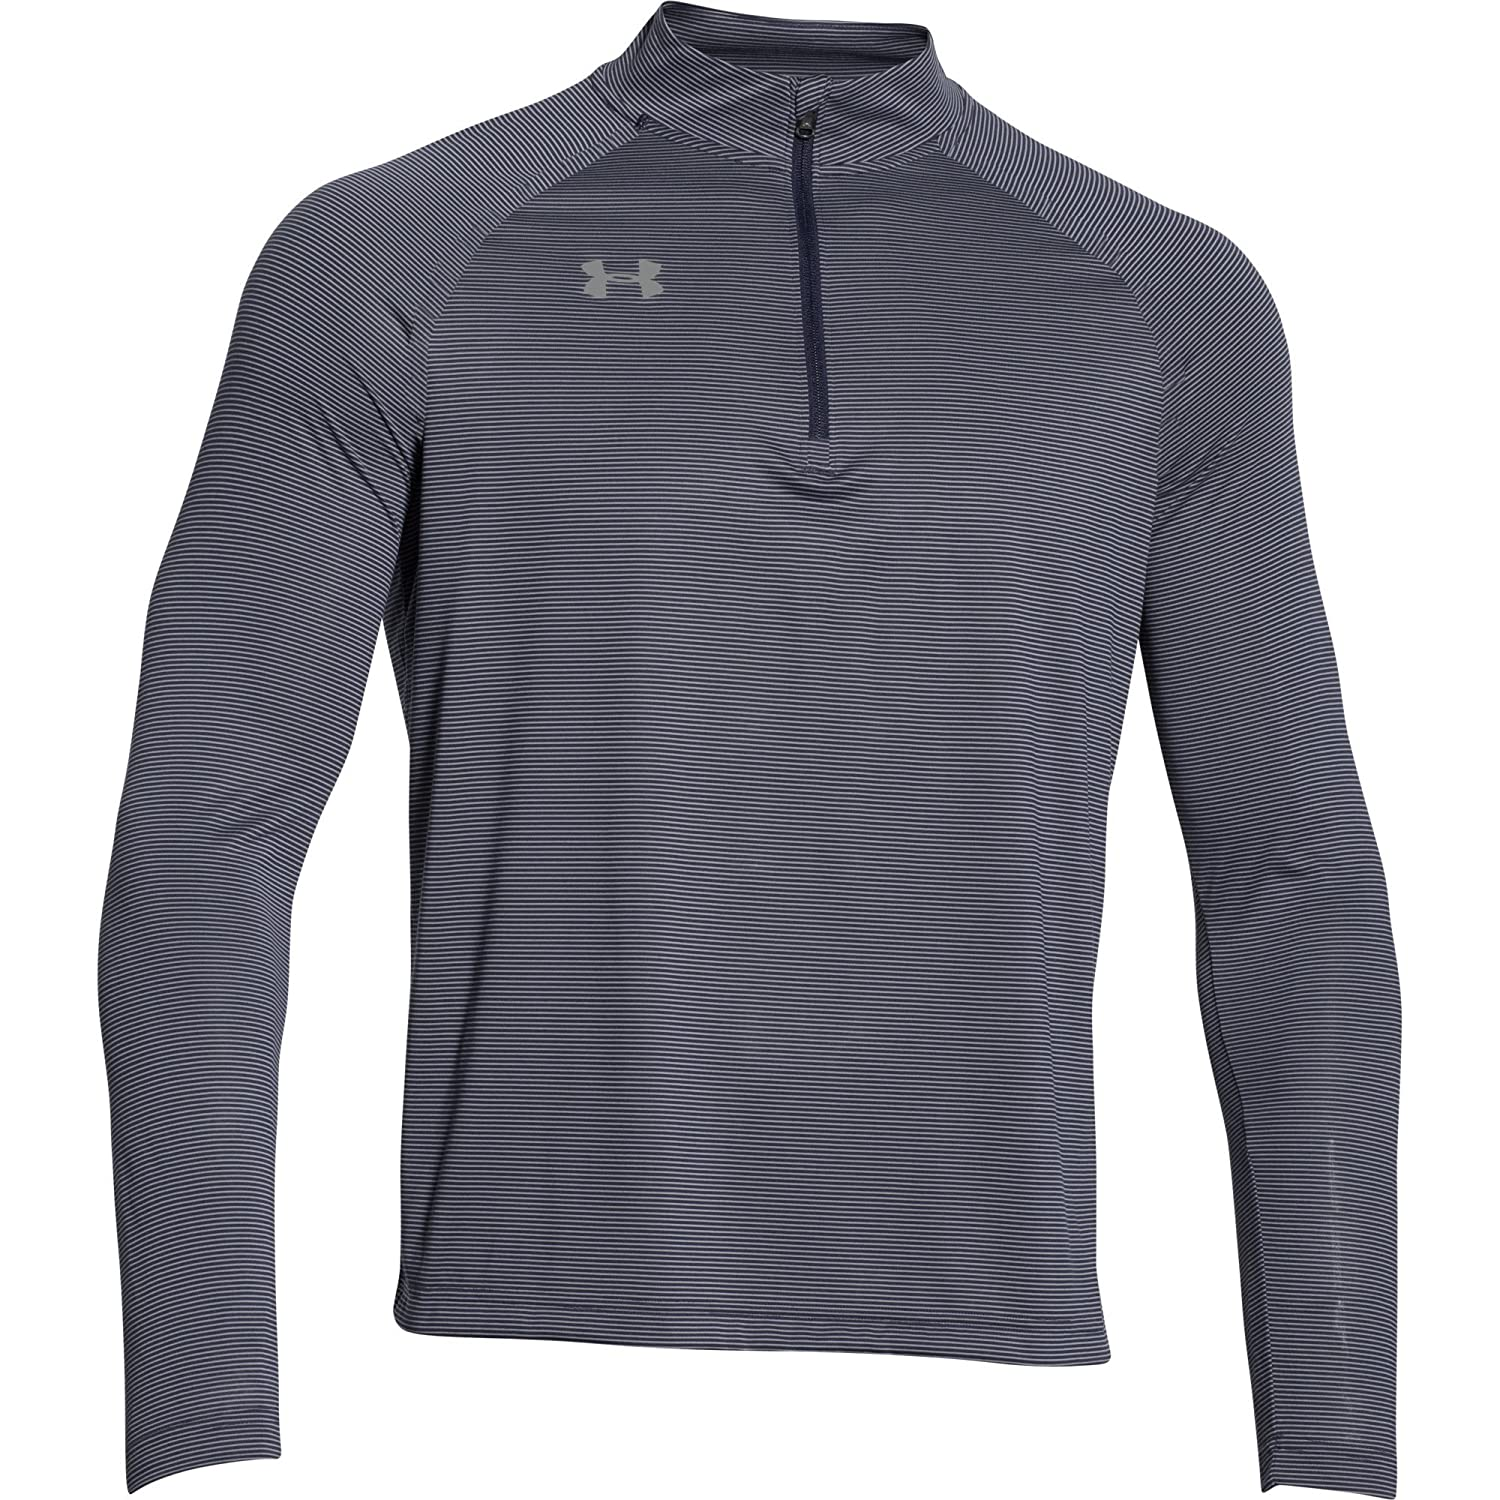 Under Armour Men's Stripe Tech 1/4 Zip Pullover 1276228